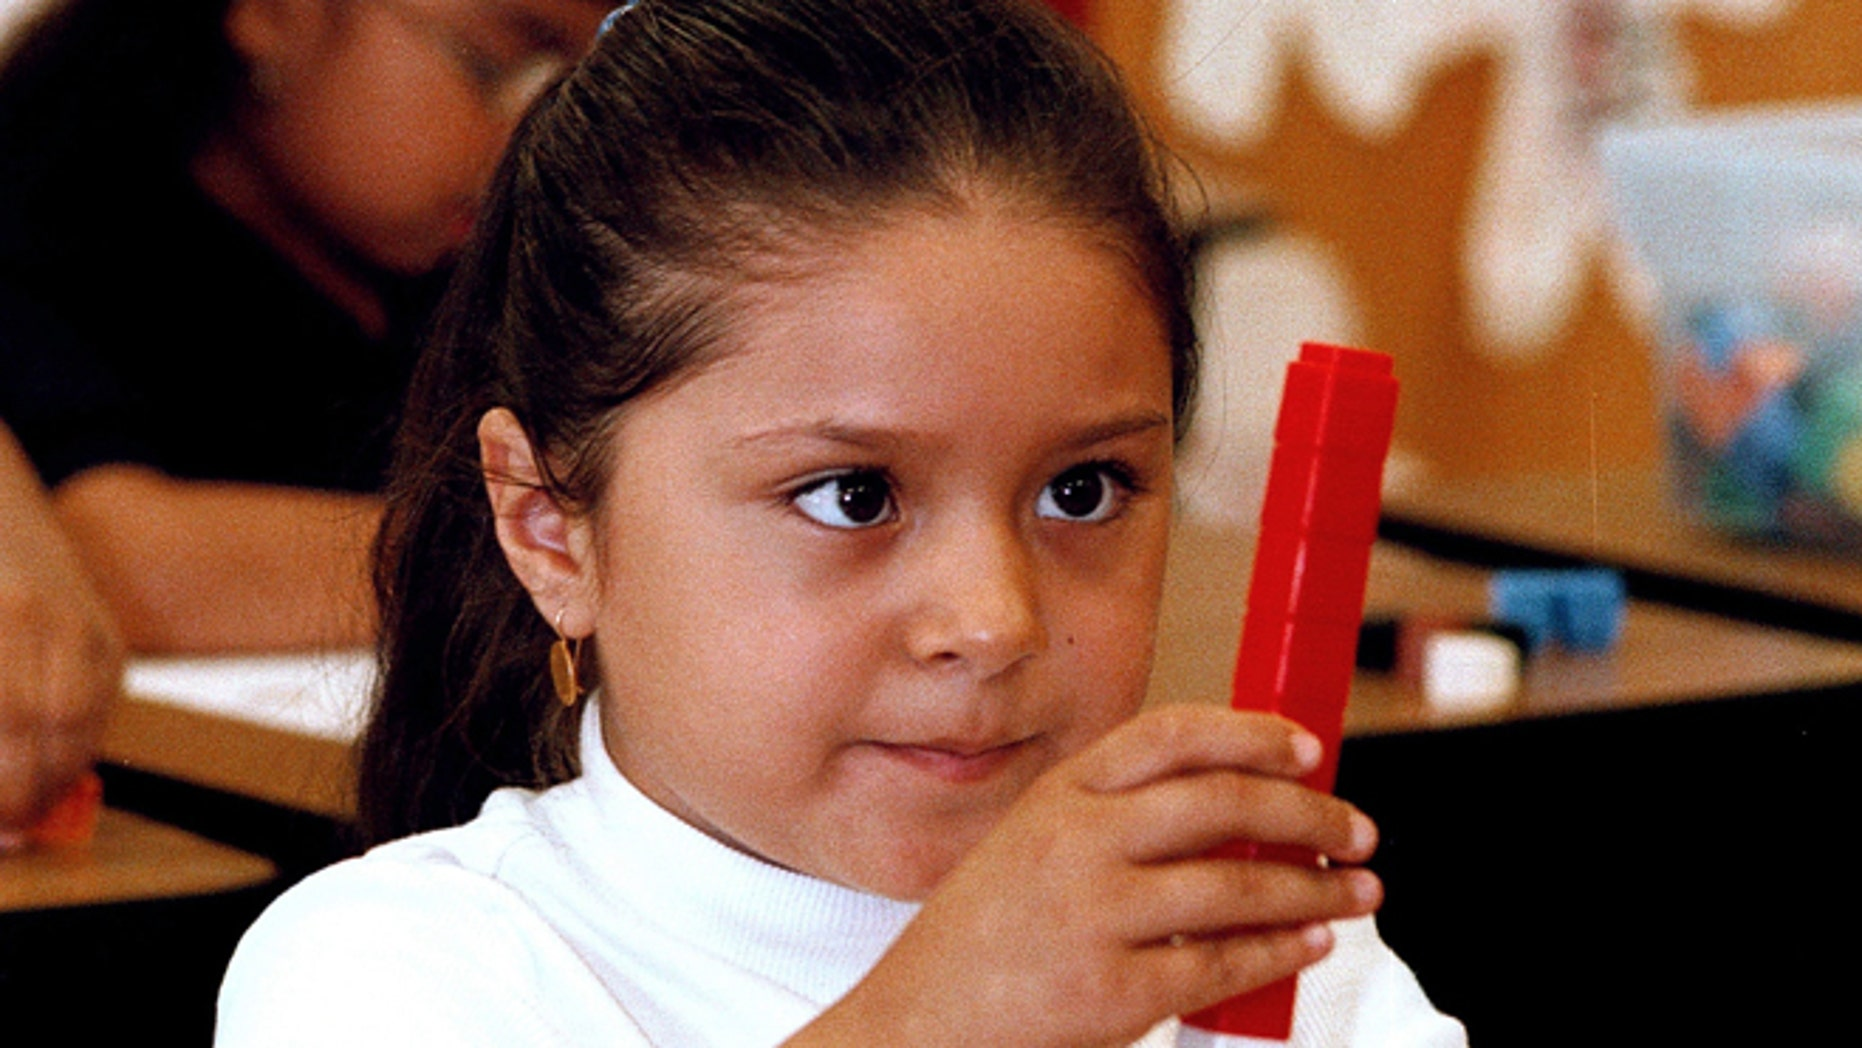 TYLER,TX - SEPTEMBER 11:  Seven-year-old Dulce Oliva constructs a stack of blocks during a math lesson in English at Birdwell Elementary School September 11, 2003 in Tyler, Texas. Oliva is one of the 60 percent of Hispanic students among a student body of 600 at the east Texas school.  (Photo by Mario Villafuerte/Getty Images)